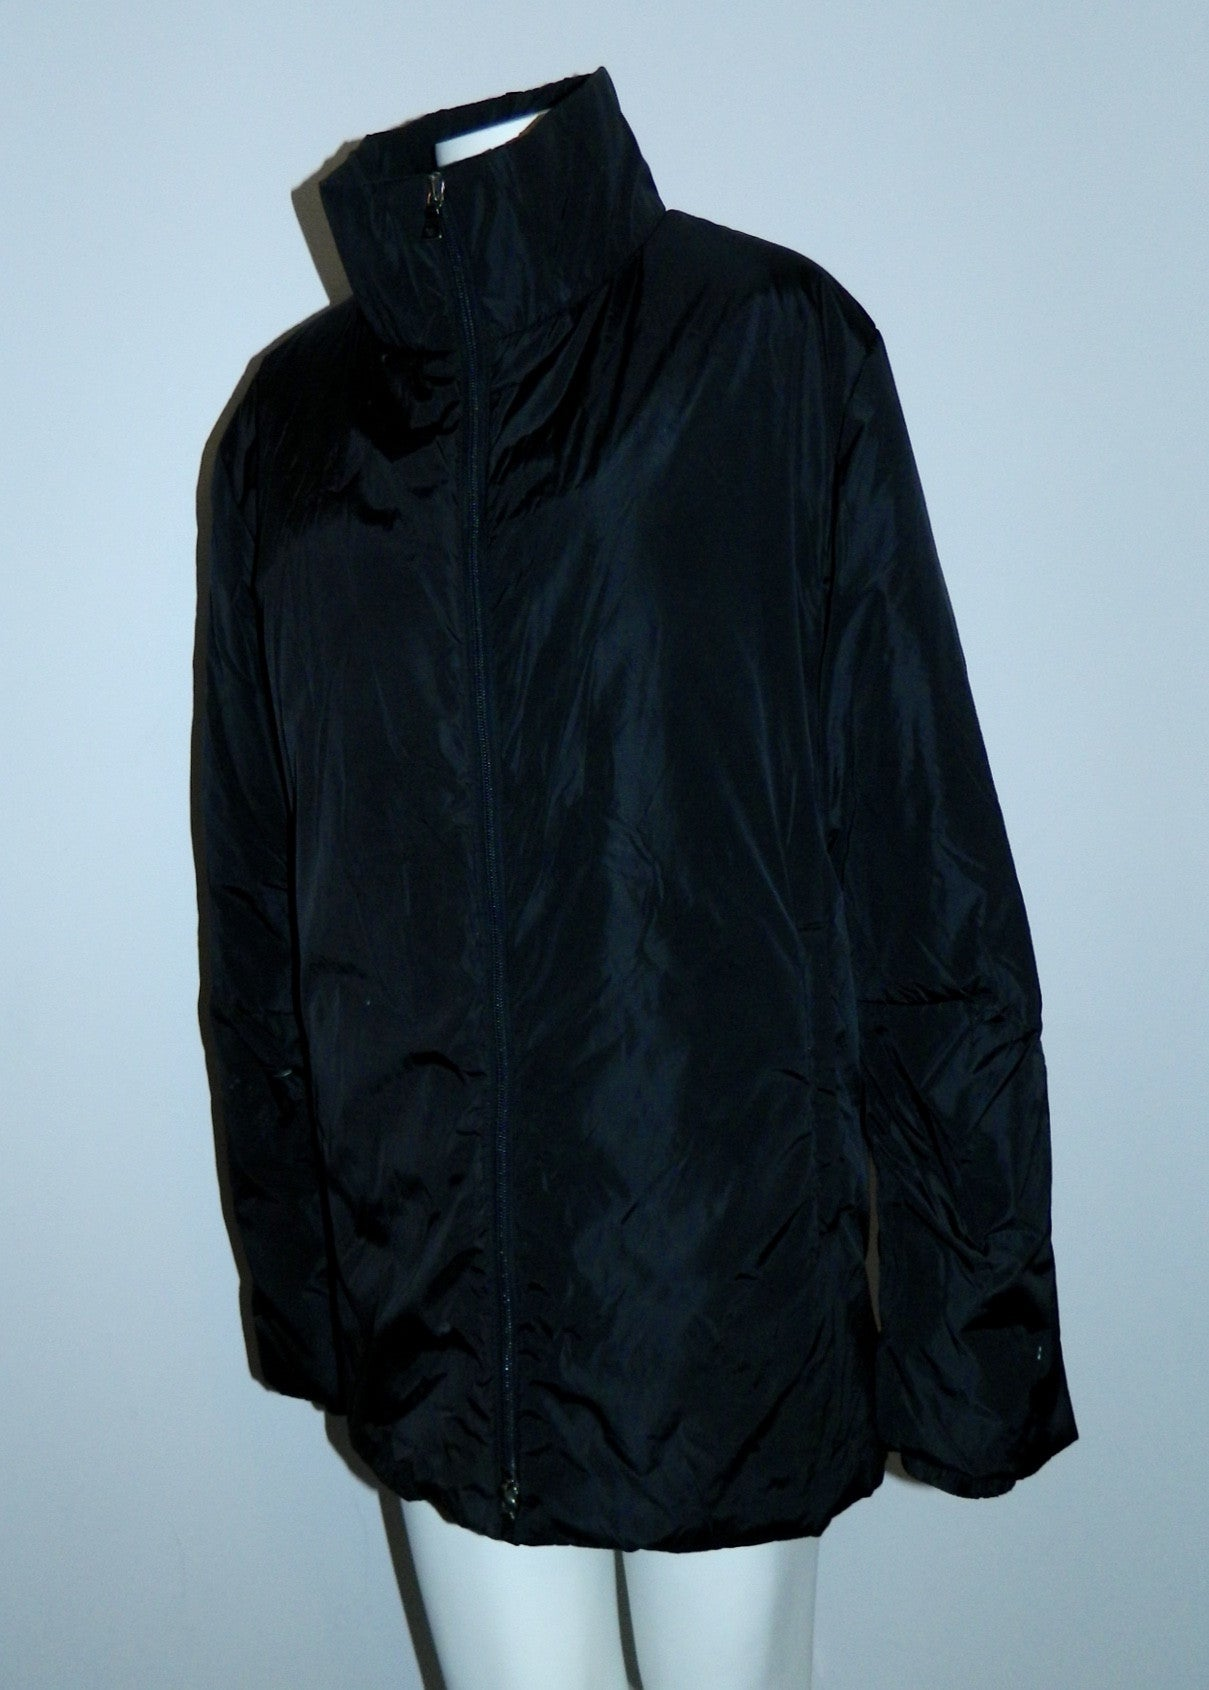 black nylon PRADA ski coat poly fill jacket Apres Ski travel It. 50 / US Mens M / Womens L- XL